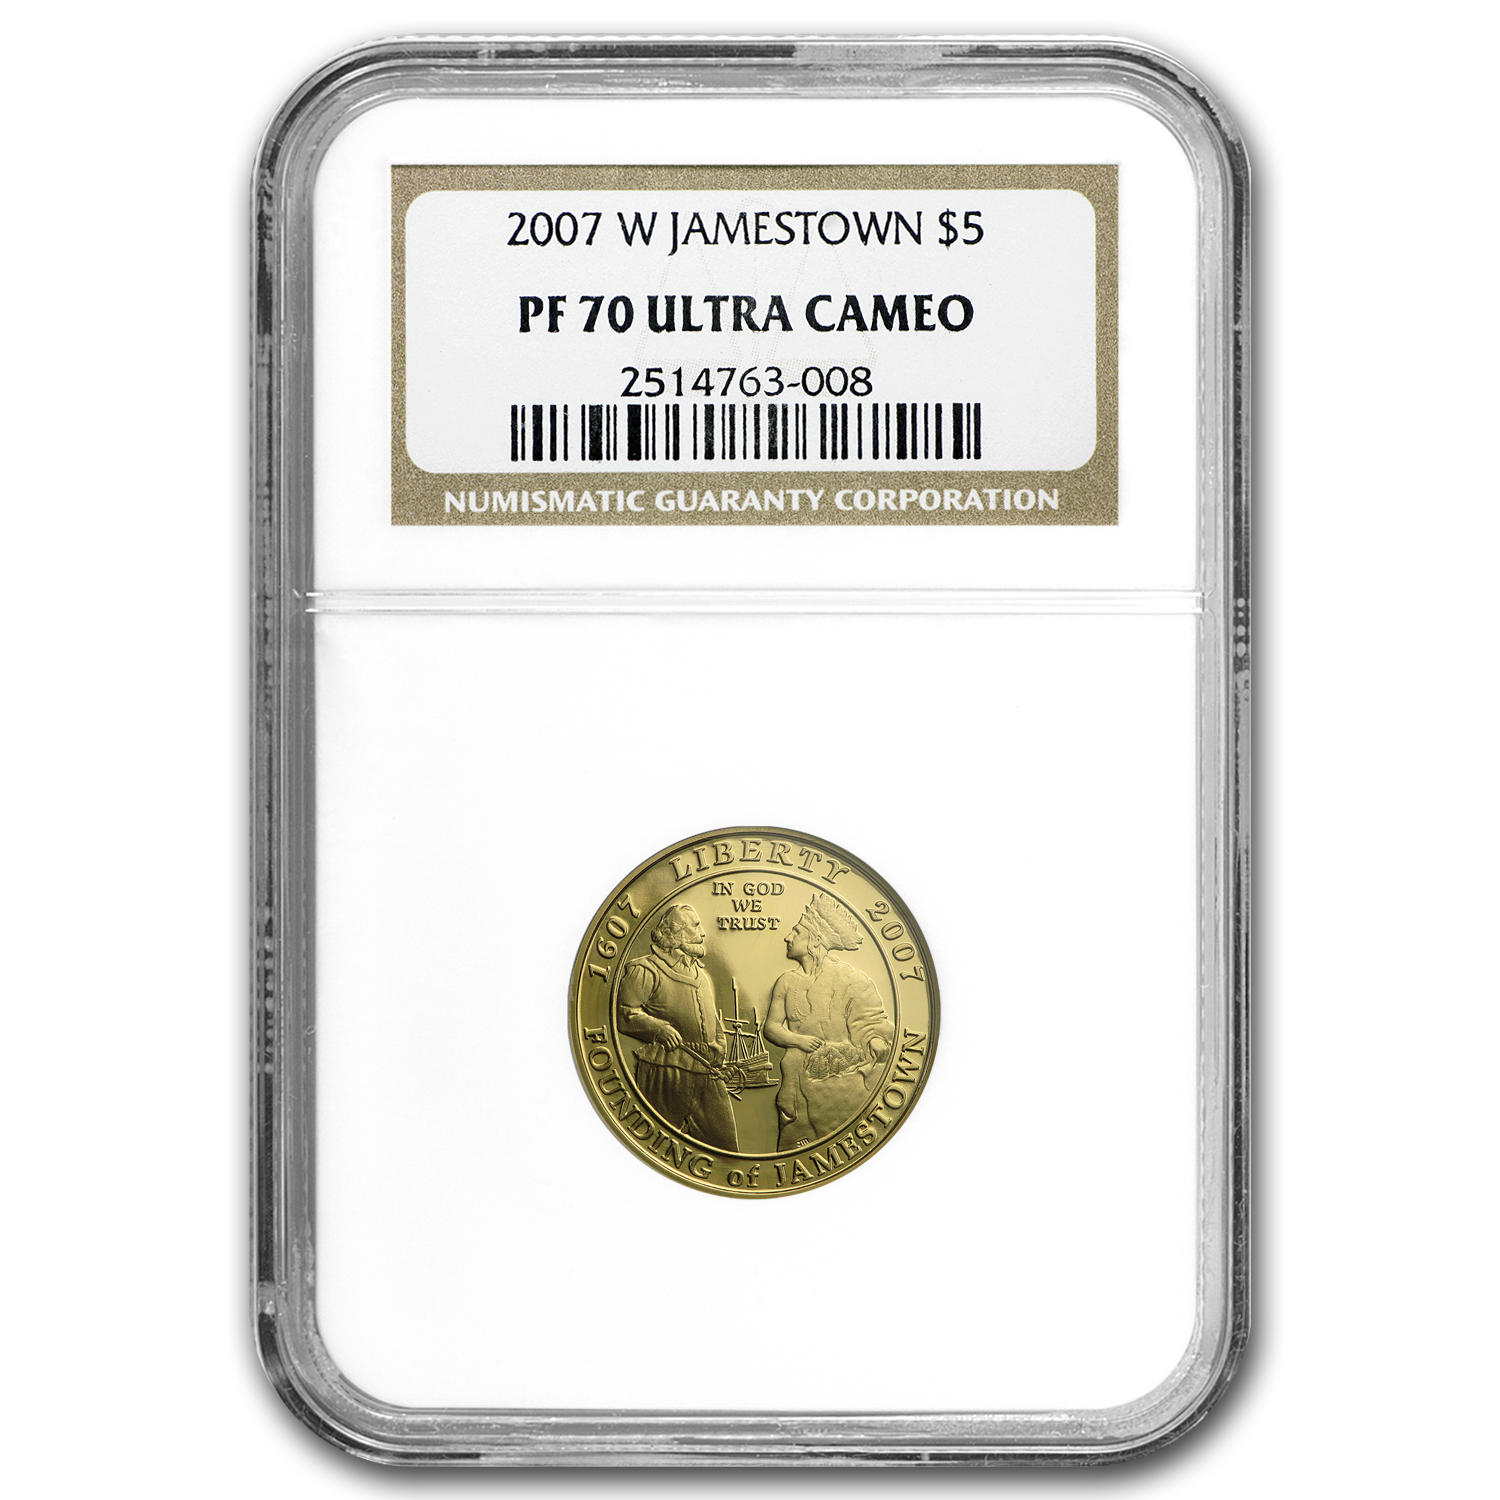 2007-W Gold $5 Commem Jamestown PF-70 NGC